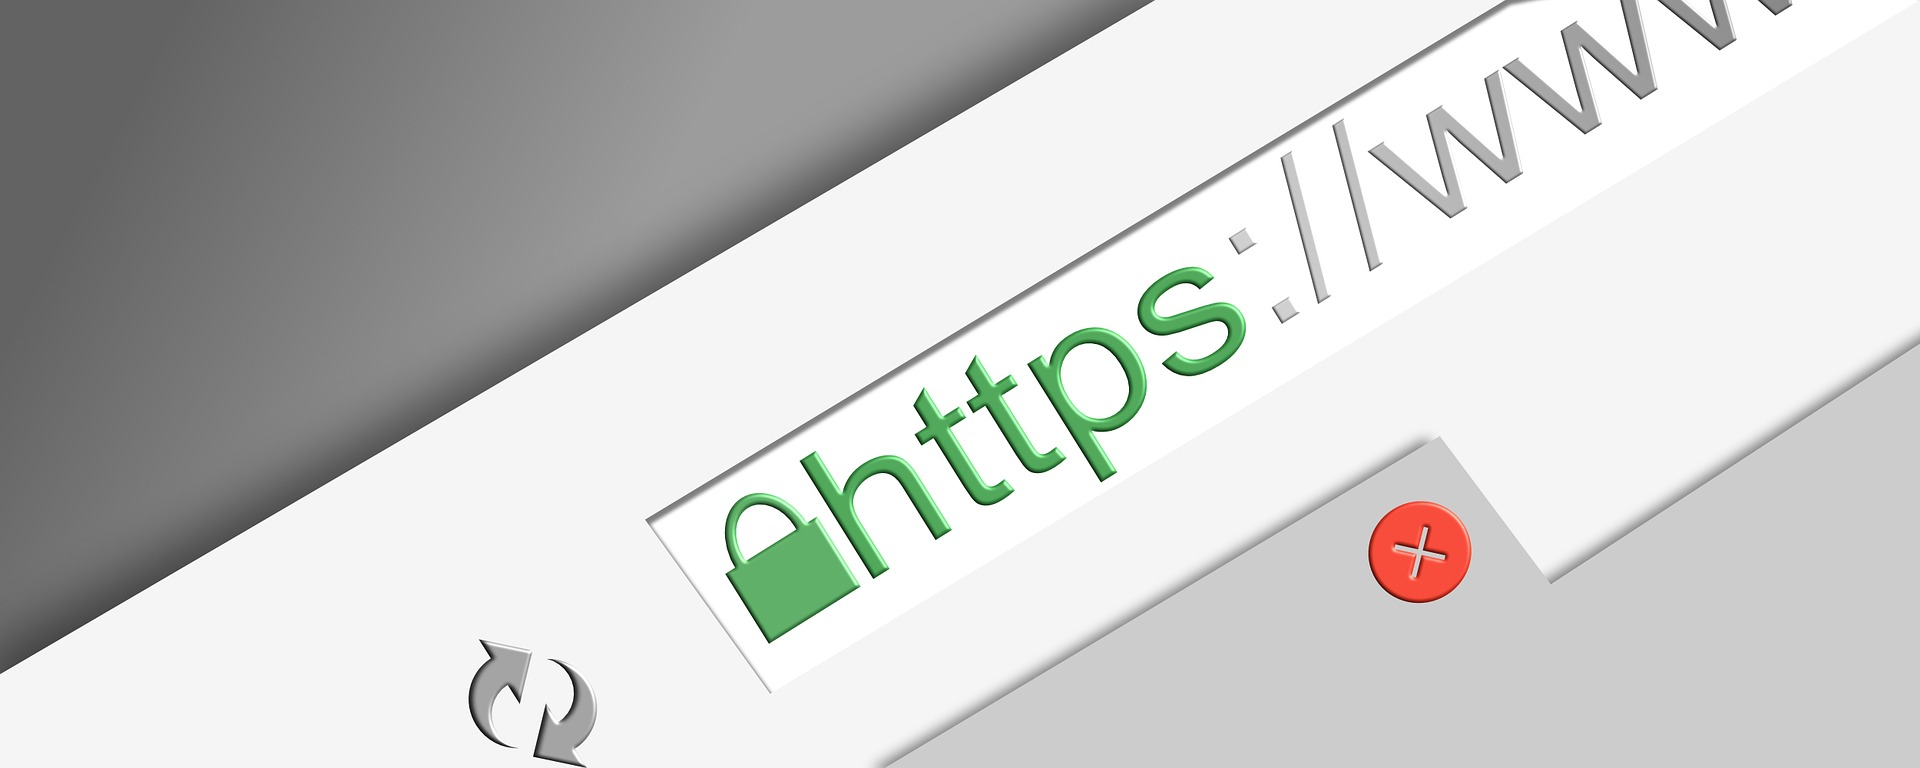 Https browser bar image